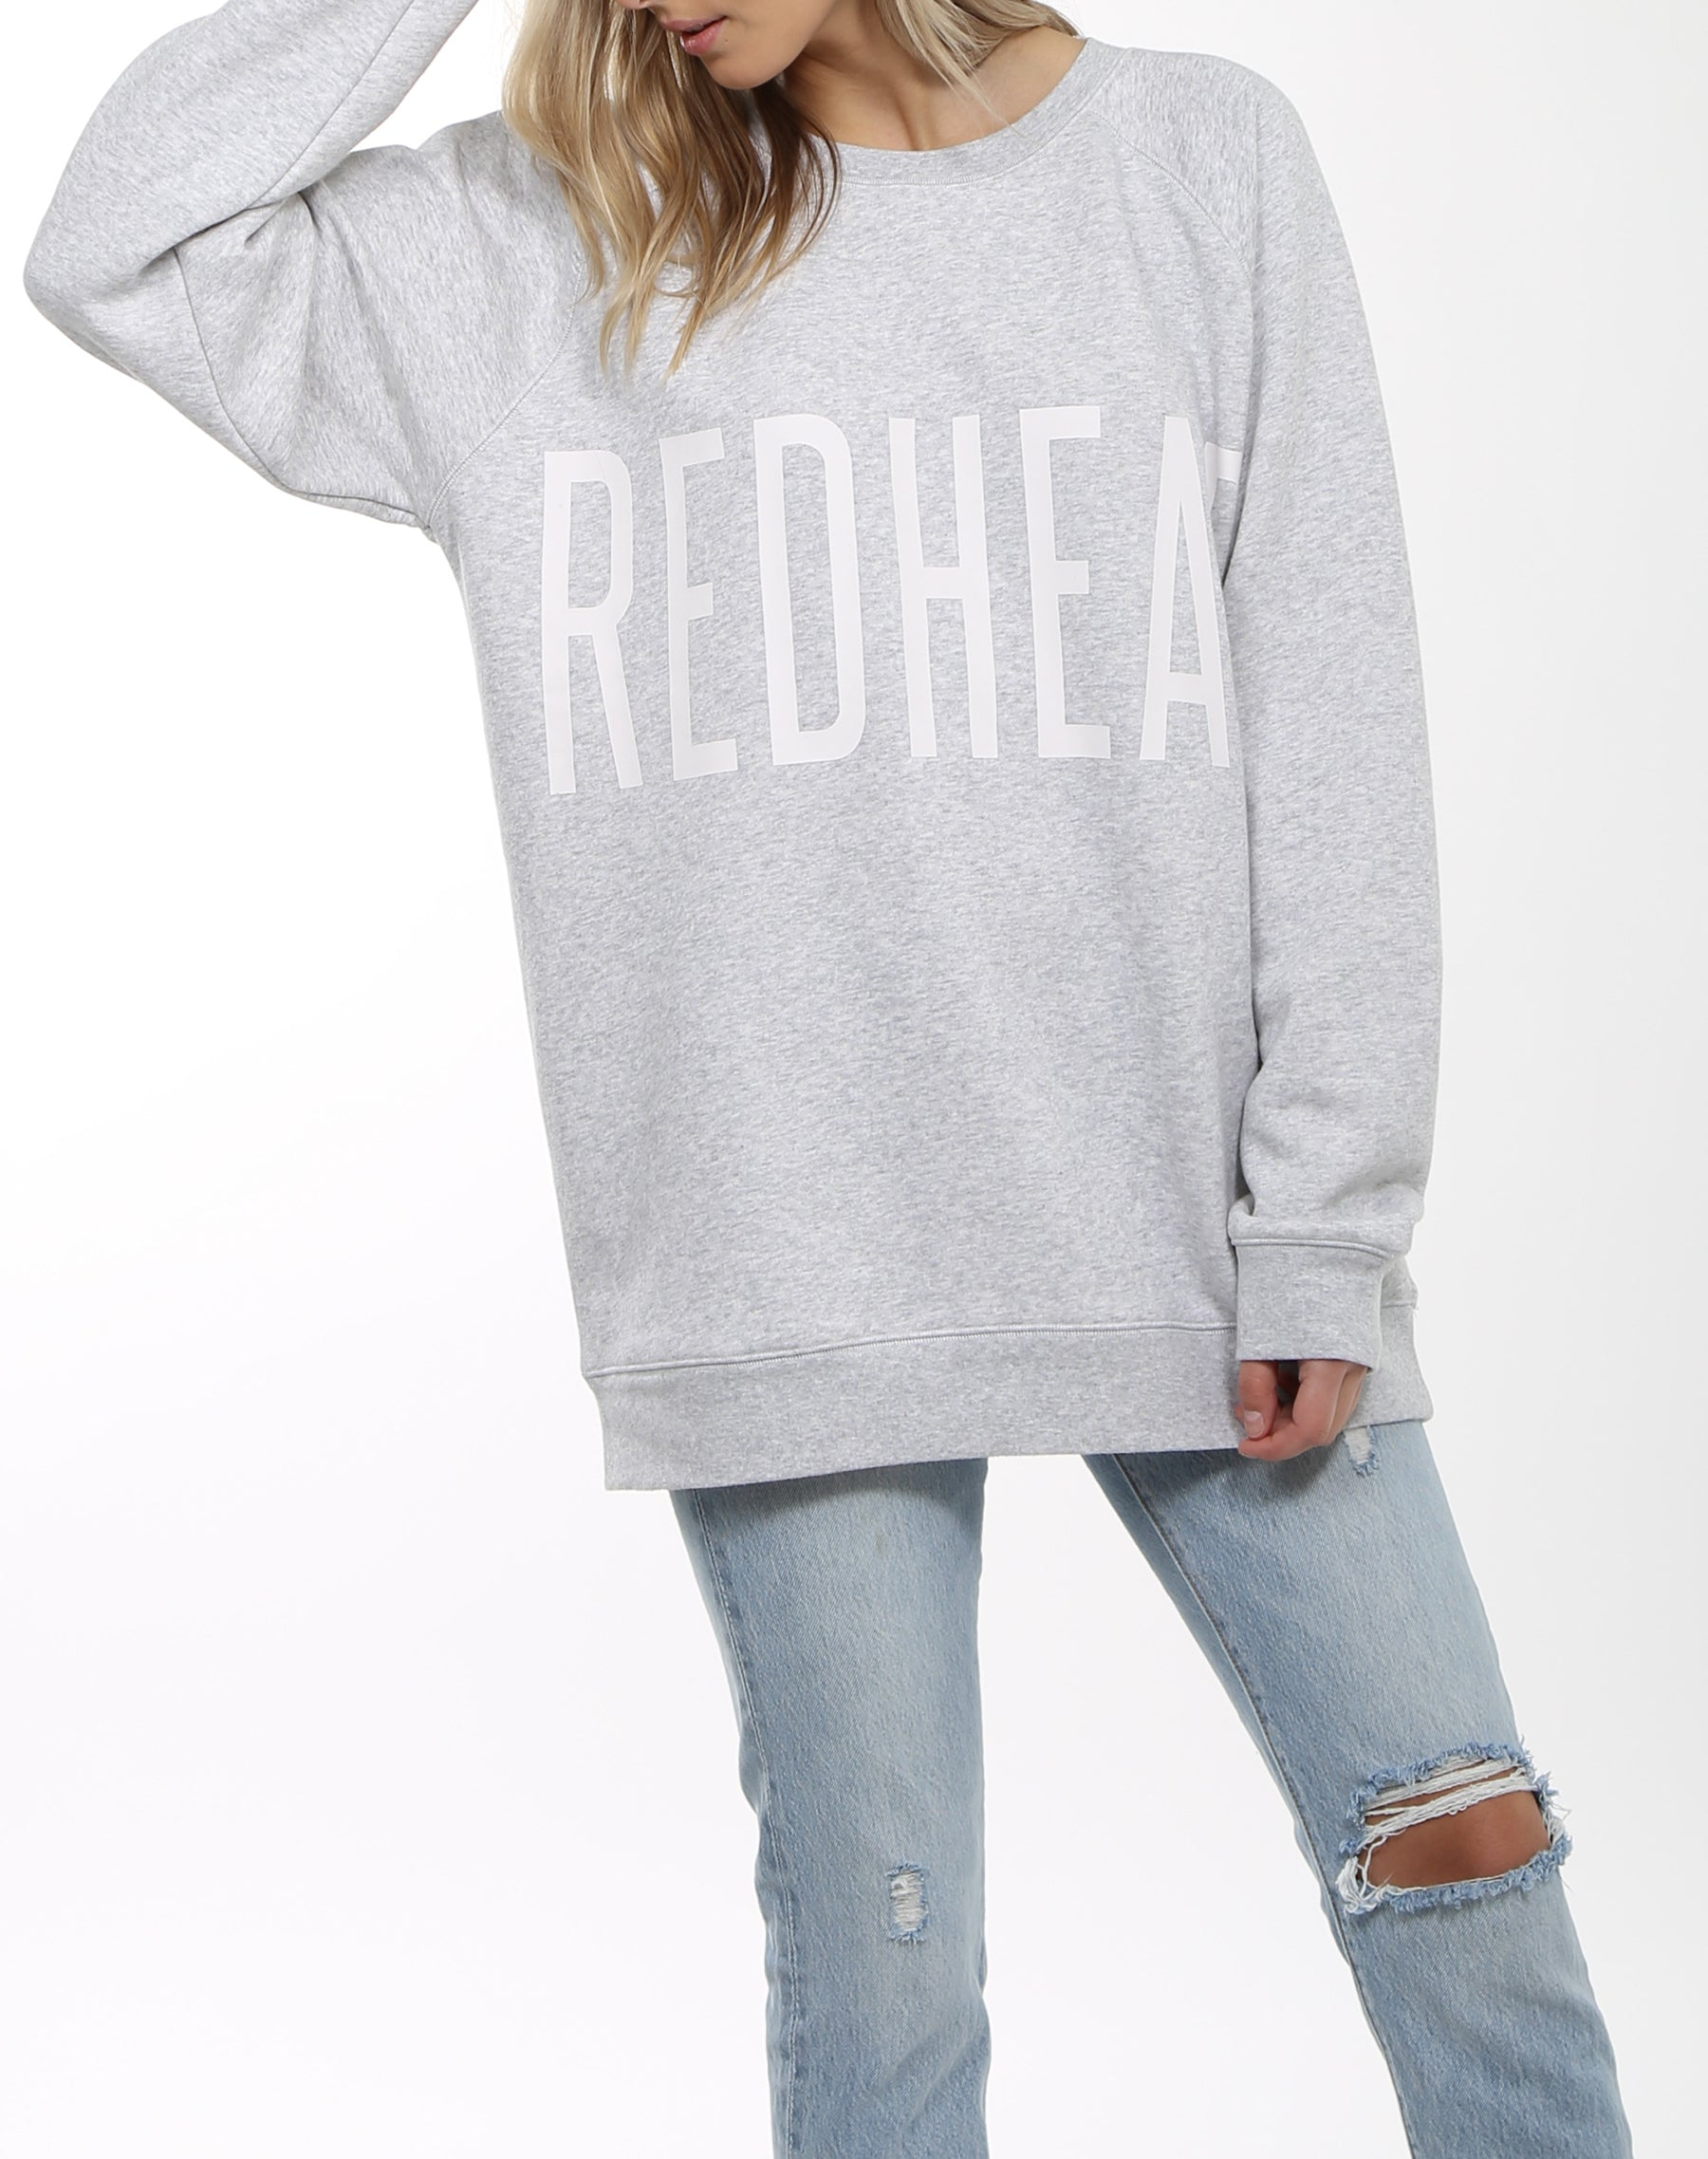 Photo of the Redhead big sister crew neck sweatshirt in pebble grey by Brunette the Label.